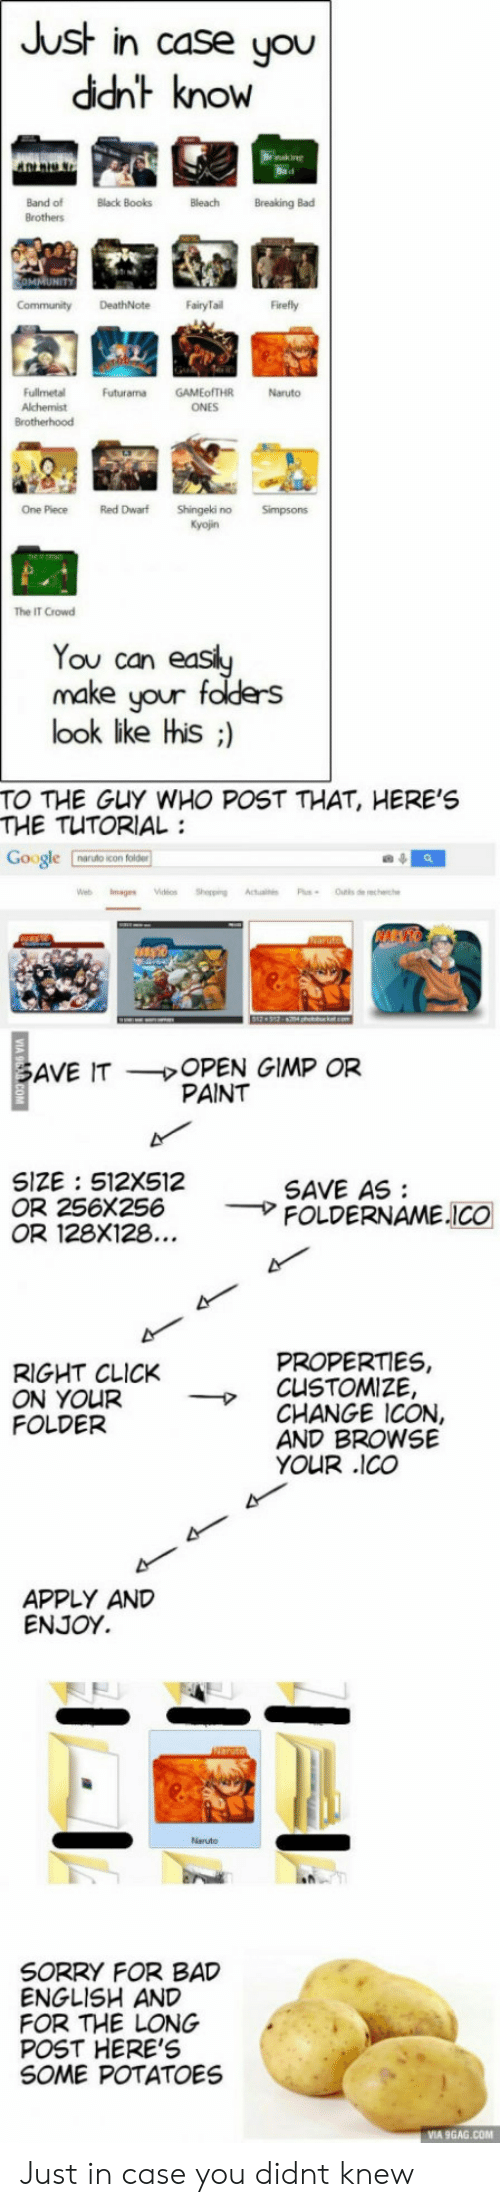 9gag, Bad, and Books: Just in case you  ddht know  OW  Band of  Brothers  Black Books  Bleach Breaking Bad  MMUNITY  FairyTail  Firefly  Fullmetal  Alchemist  Futurama GAMEofTHR  Naruto  ONES  One Piece Red Dwarf Shingeki no Simpsons  Kyojin  The IT Crow  Tou can  make uour f  look ike his ;)  TO THE GuY WHO POST THAT, HERE'S  THE TUTORIAL:  le  naruto icon folder  OPEN GIMP OR  PAINT  AVE IT  SIZE 512X512  OR 256x256  OR 128X128  SAVE AS  → FOLDERNAME.ICO  PROPERTIES,  RIGHT CLICK  ON YOUR  FOLDER  → CLISTOMIZE,  CHANGE ICON,  AND BROWSE  YOUR .co  APPLY AND  ENJOY.  Neruto  SORRY FOR BAD  ENGLISH AND  FOR THE LONG  POST HERE'S  SOME POTATOES  VIA 9GAG.COM Just in case you didnt knew